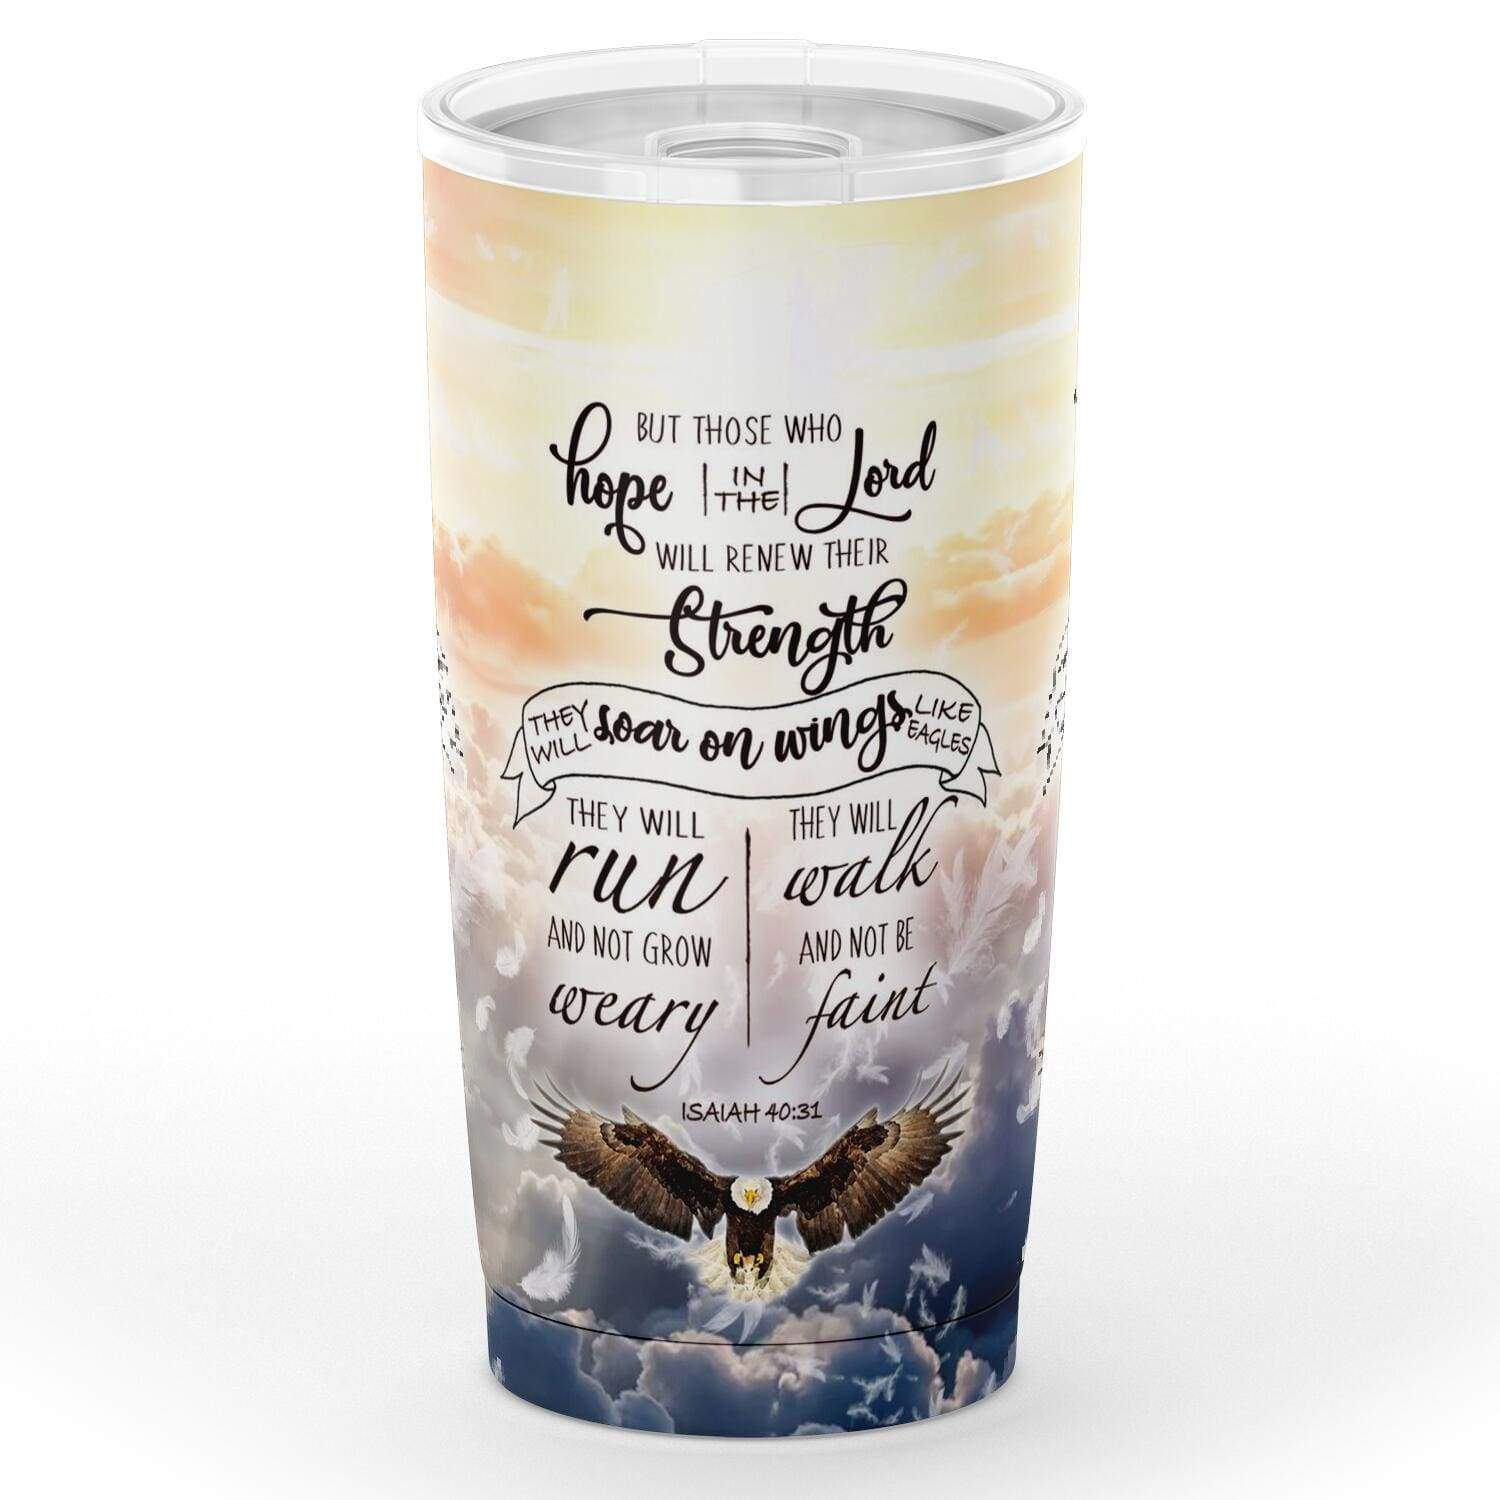 Those who hope in the Lord will renew their strength Isaiah 40:31 tumbler - GnWarriors Clothing